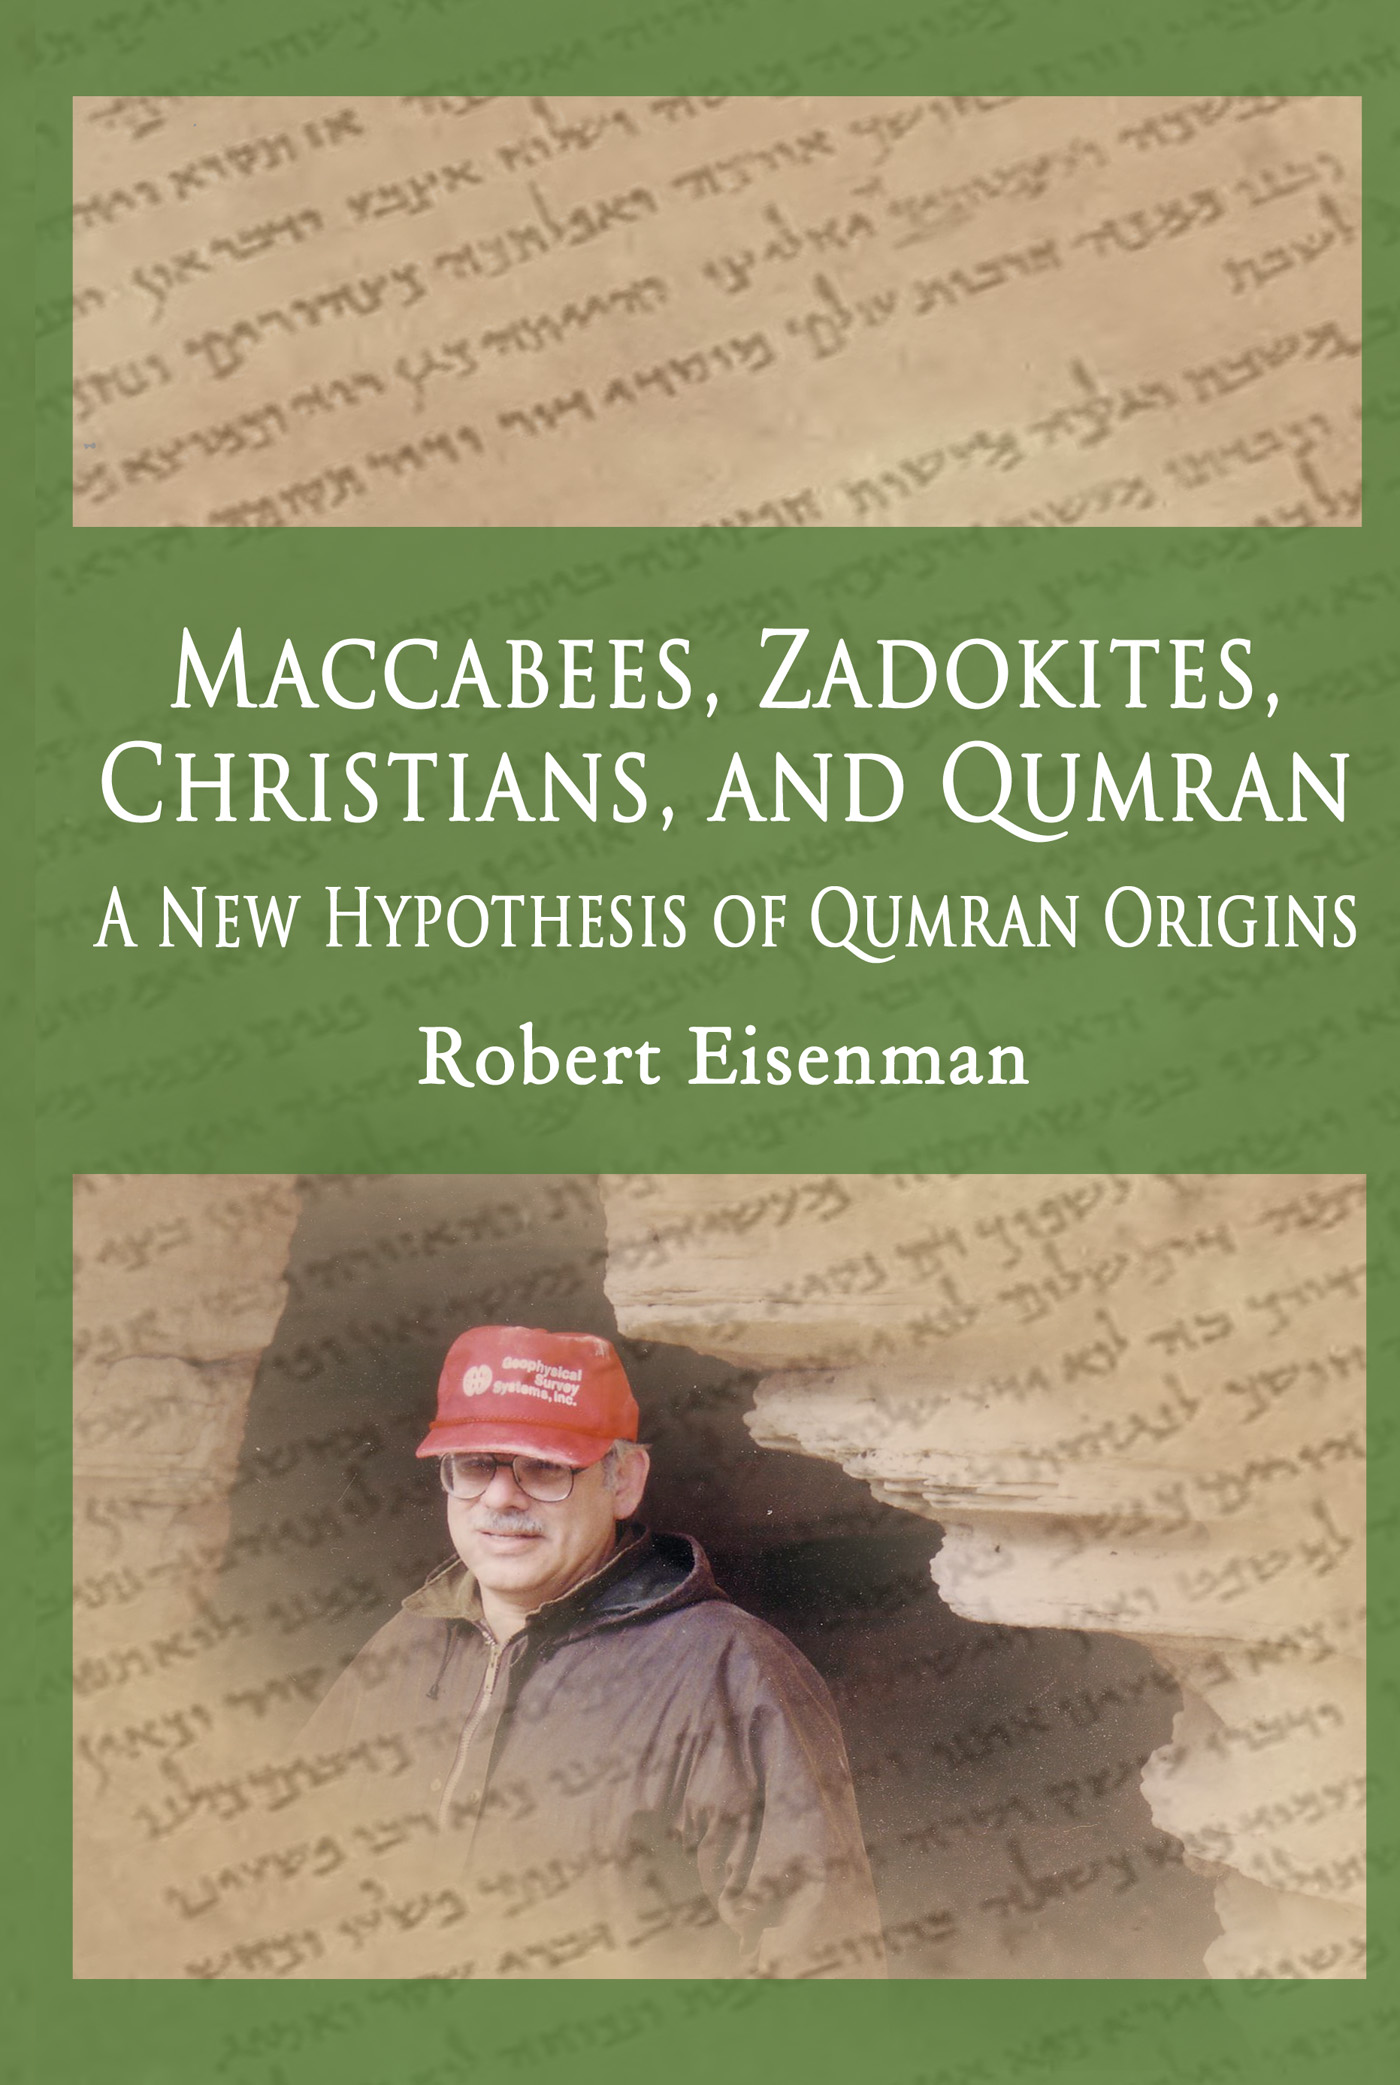 Maccabees, Zadokites, Christians, and Qumran: A New Hypothesis of Qumran Origins